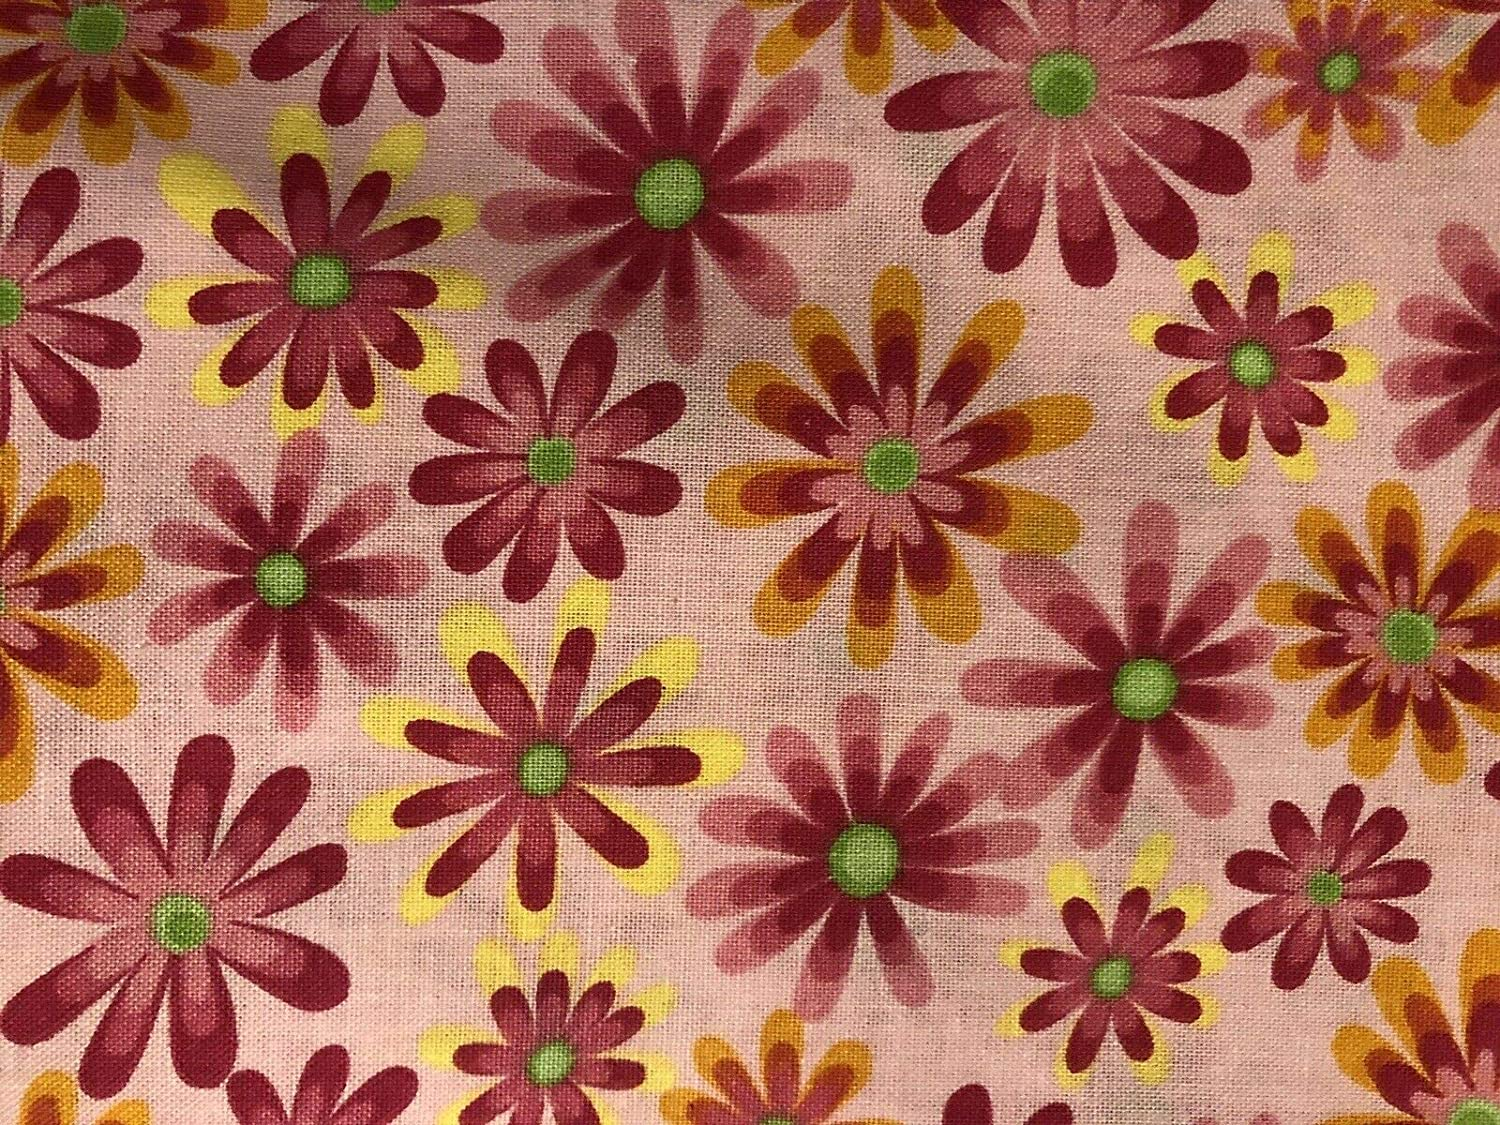 Hot Pink Flower Power Peek-A-Boo Iron On Patches by Holey Patches 2-4 x 4